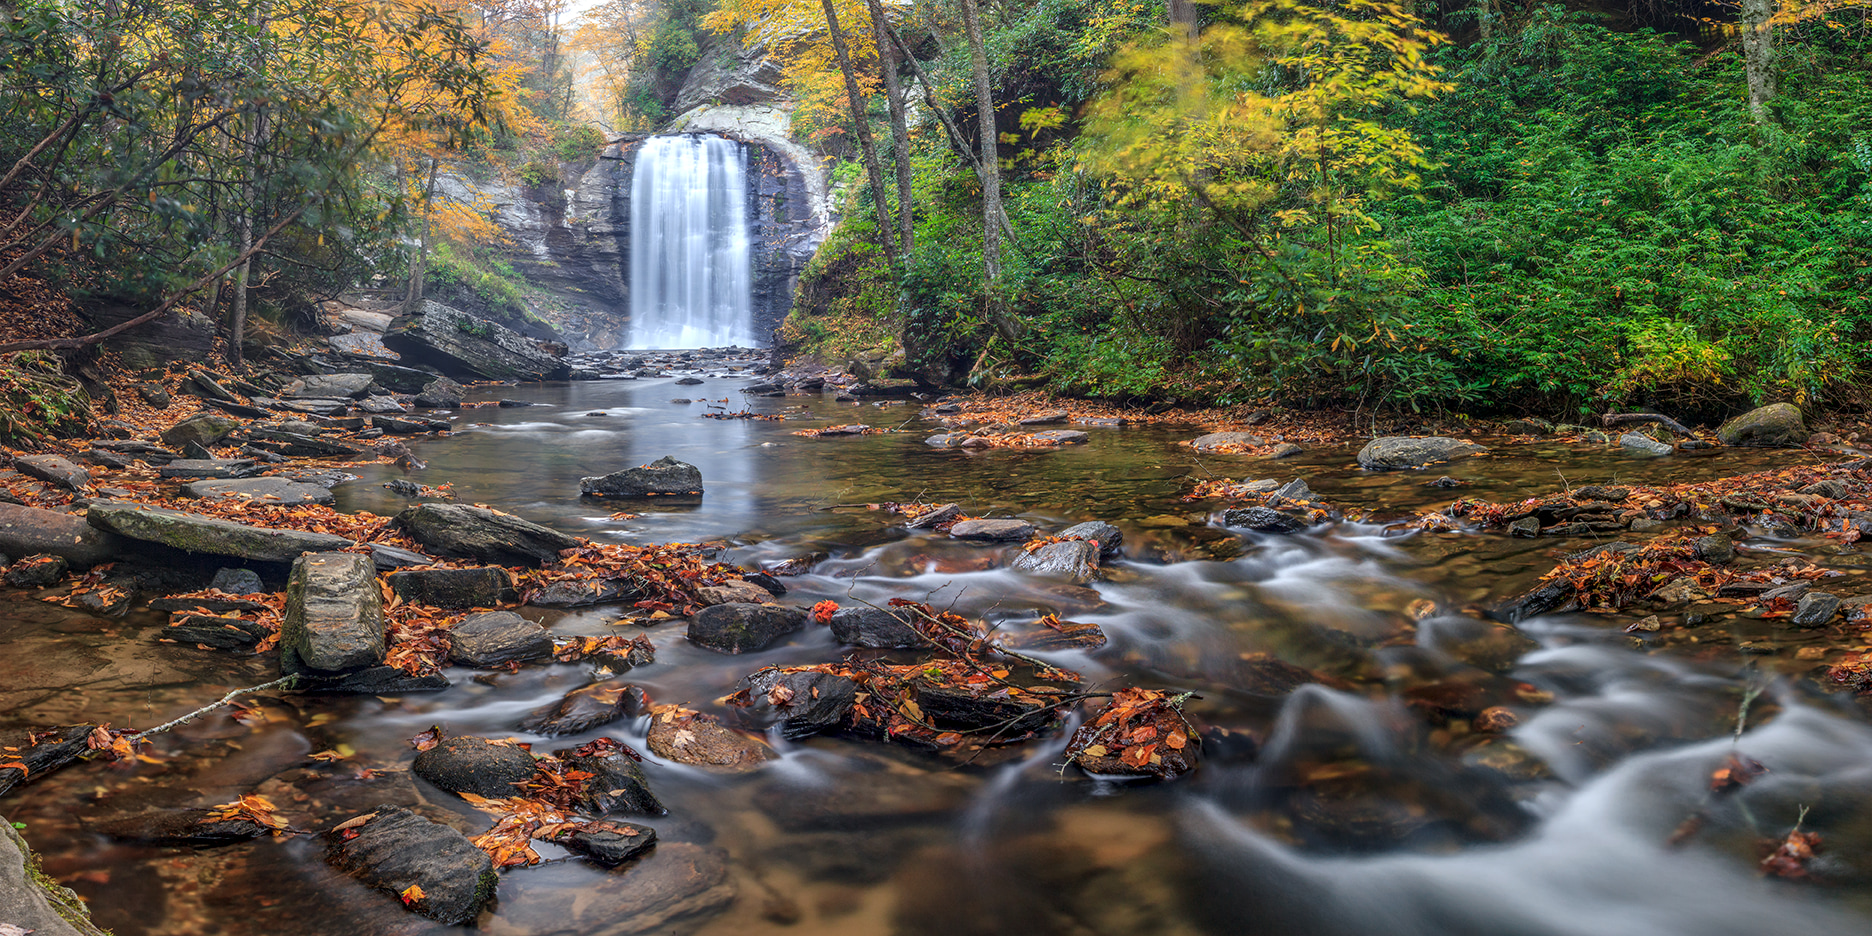 <div class='title'>           Autumn at Looking Glass Falls         </div>